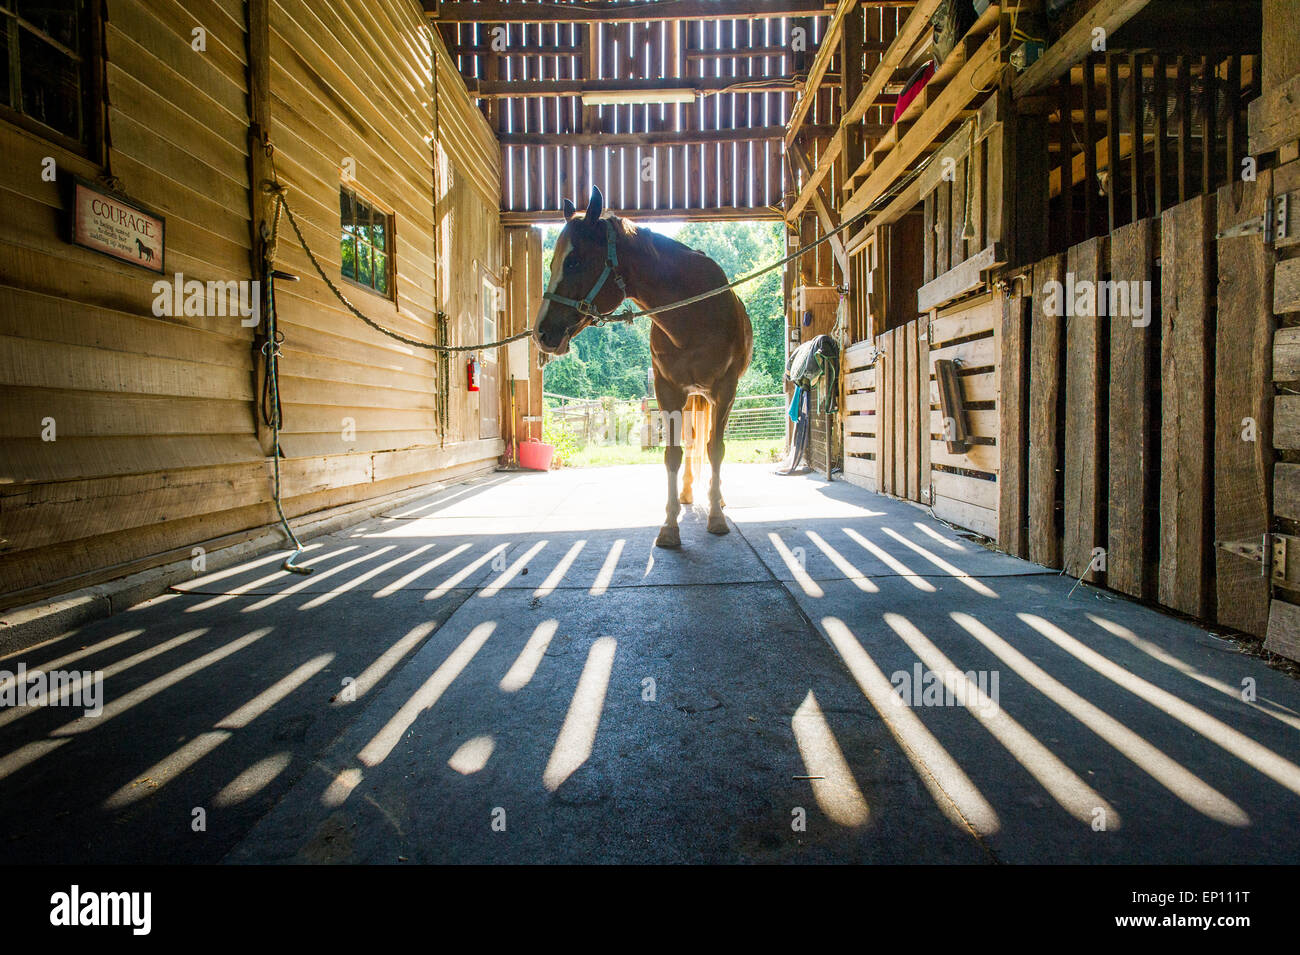 Horse in a stable showing shadows from the wood slats in  Huntingtown, Maryland, USA - Stock Image